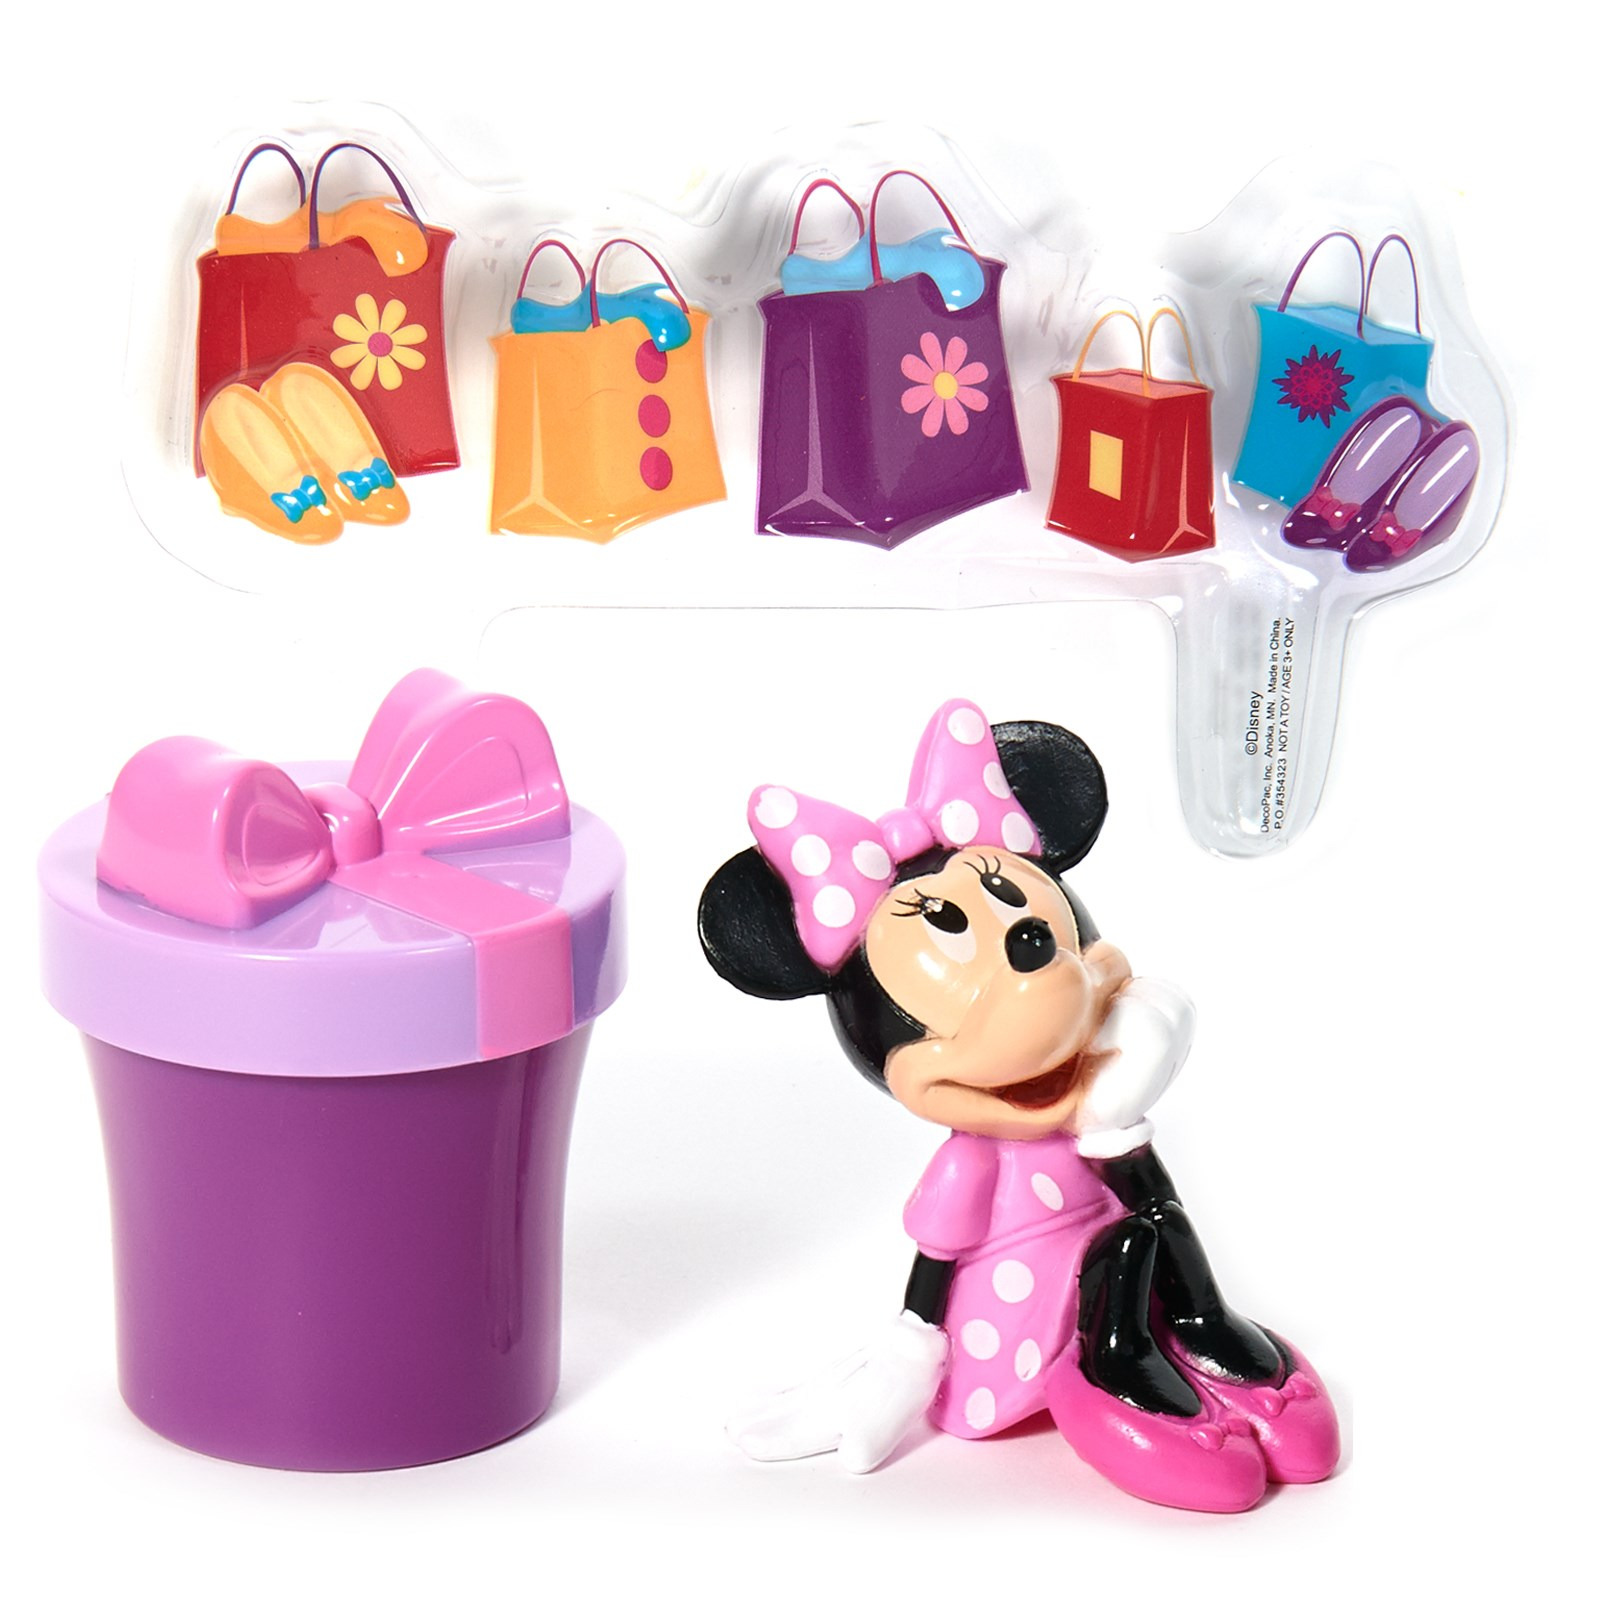 Disney Minnie Mouse Shopping Cake Topper